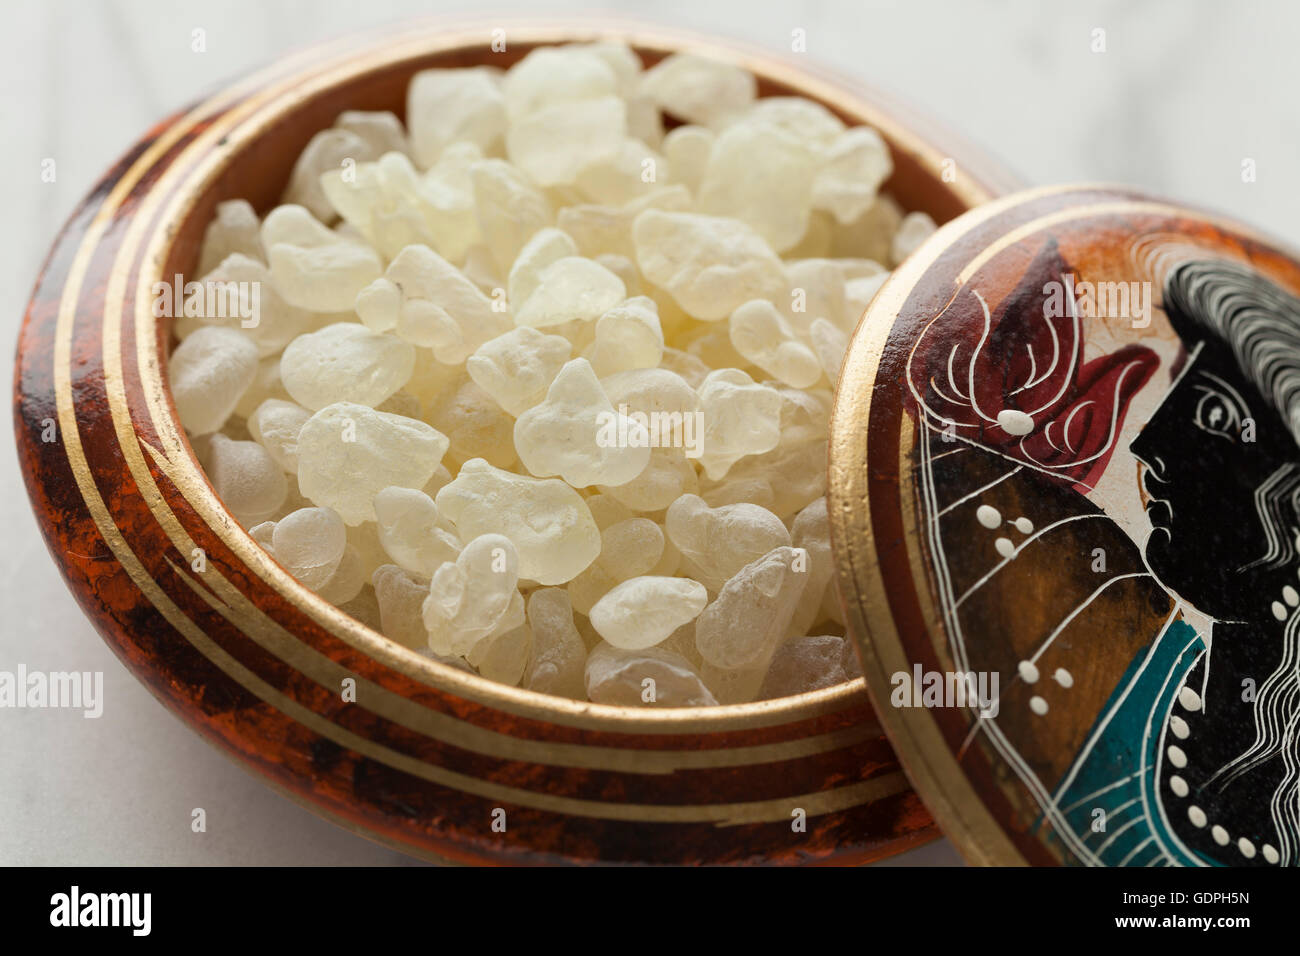 Mastic tears of Chios in a Greek bowl - Stock Image